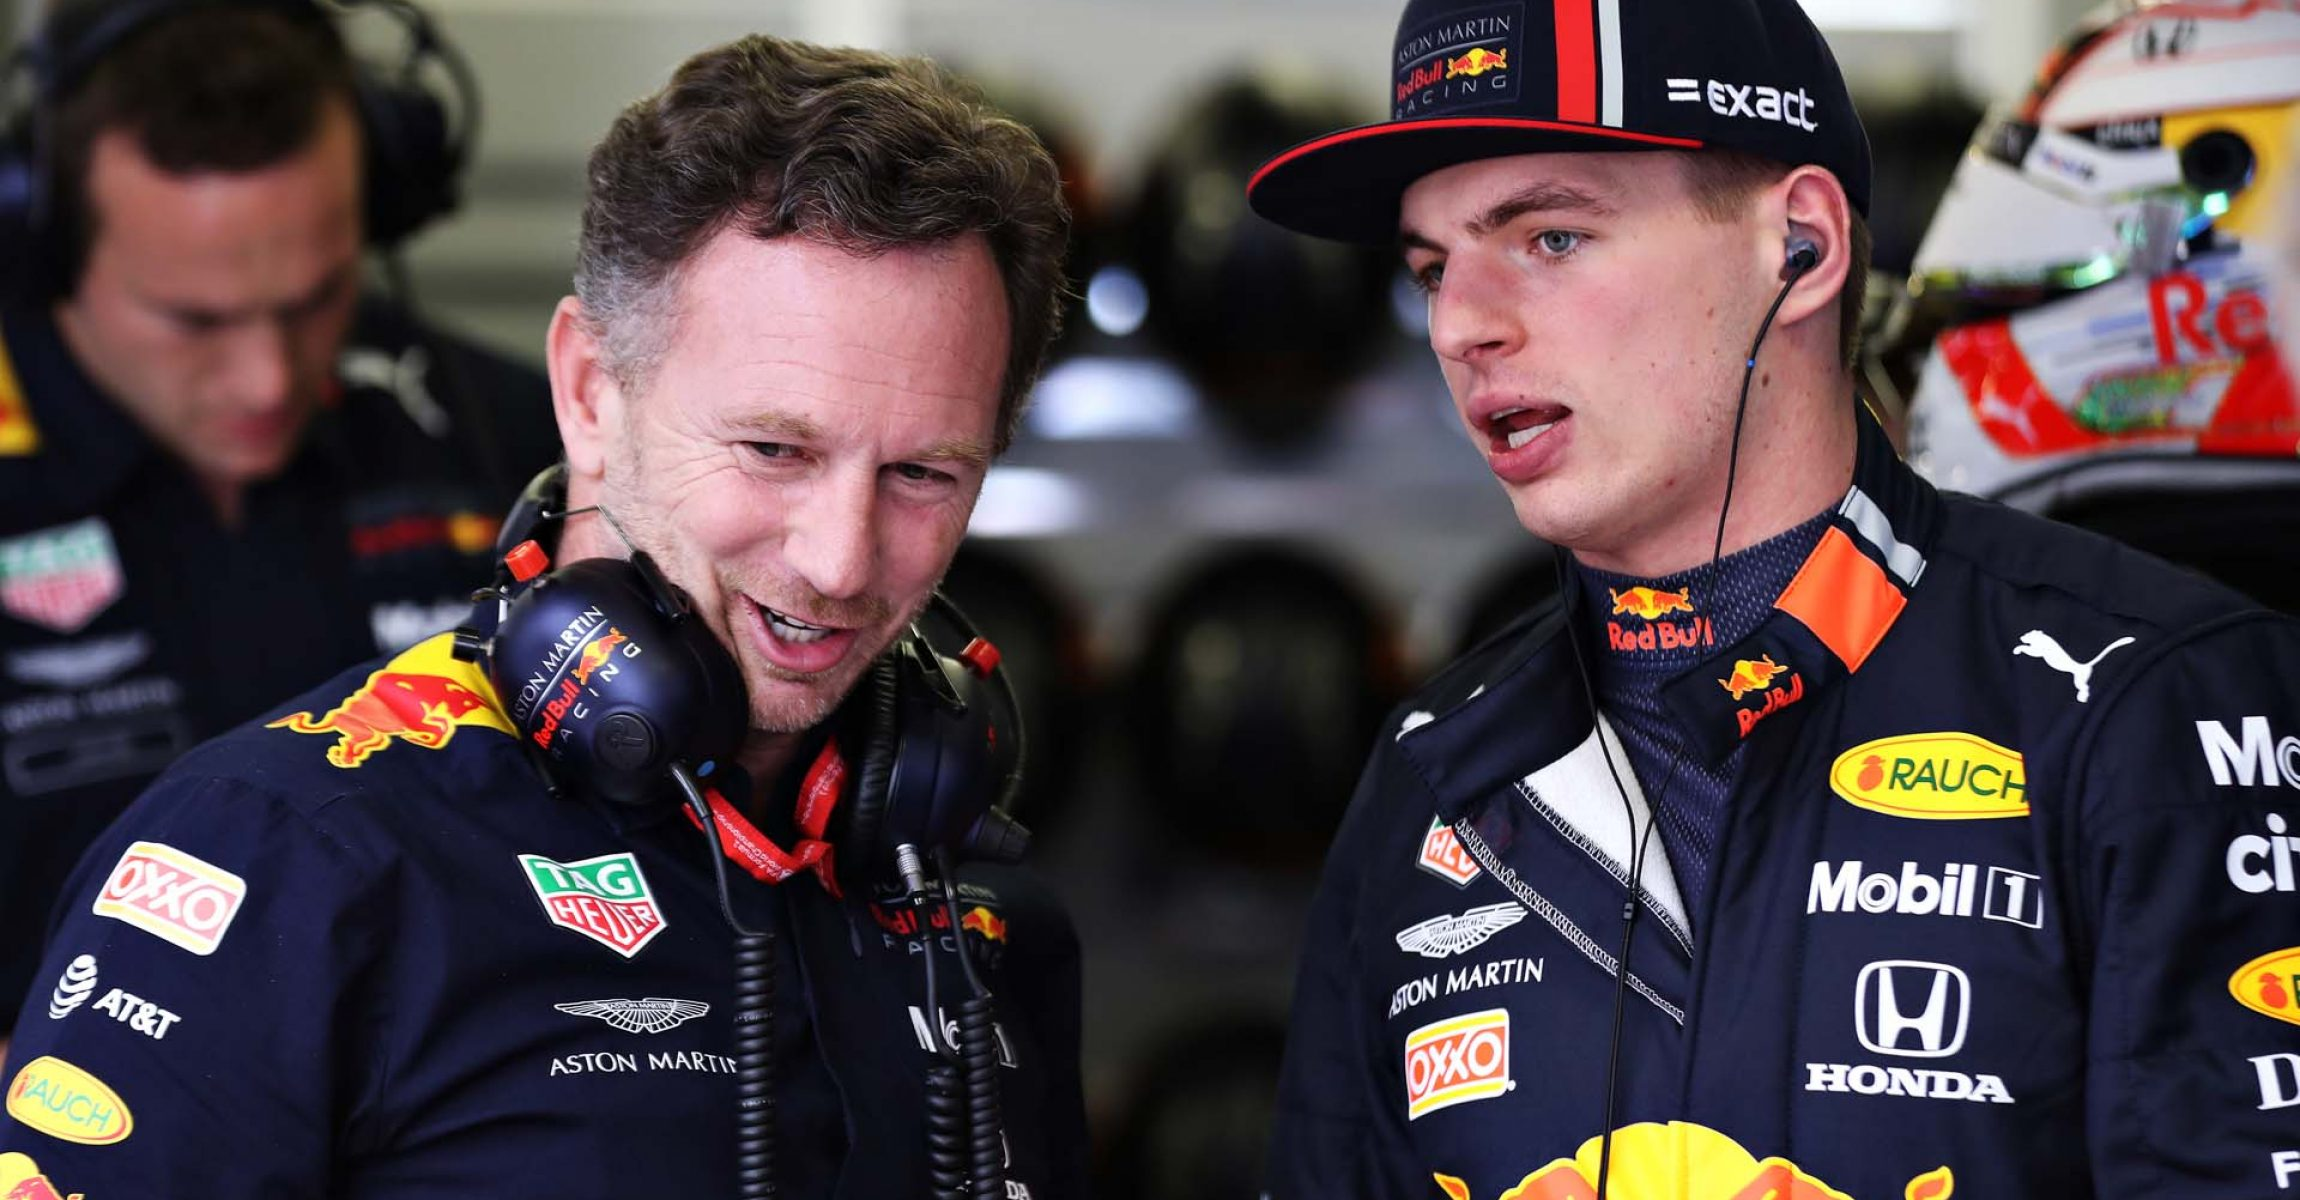 MEXICO CITY, MEXICO - OCTOBER 26: Red Bull Racing Team Principal Christian Horner talks with Max Verstappen of Netherlands and Red Bull Racing in the garage during qualifying for the F1 Grand Prix of Mexico at Autodromo Hermanos Rodriguez on October 26, 2019 in Mexico City, Mexico. (Photo by Mark Thompson/Getty Images) // Getty Images / Red Bull Content Pool // AP-21ZAPQ2EH2111 // Usage for editorial use only //